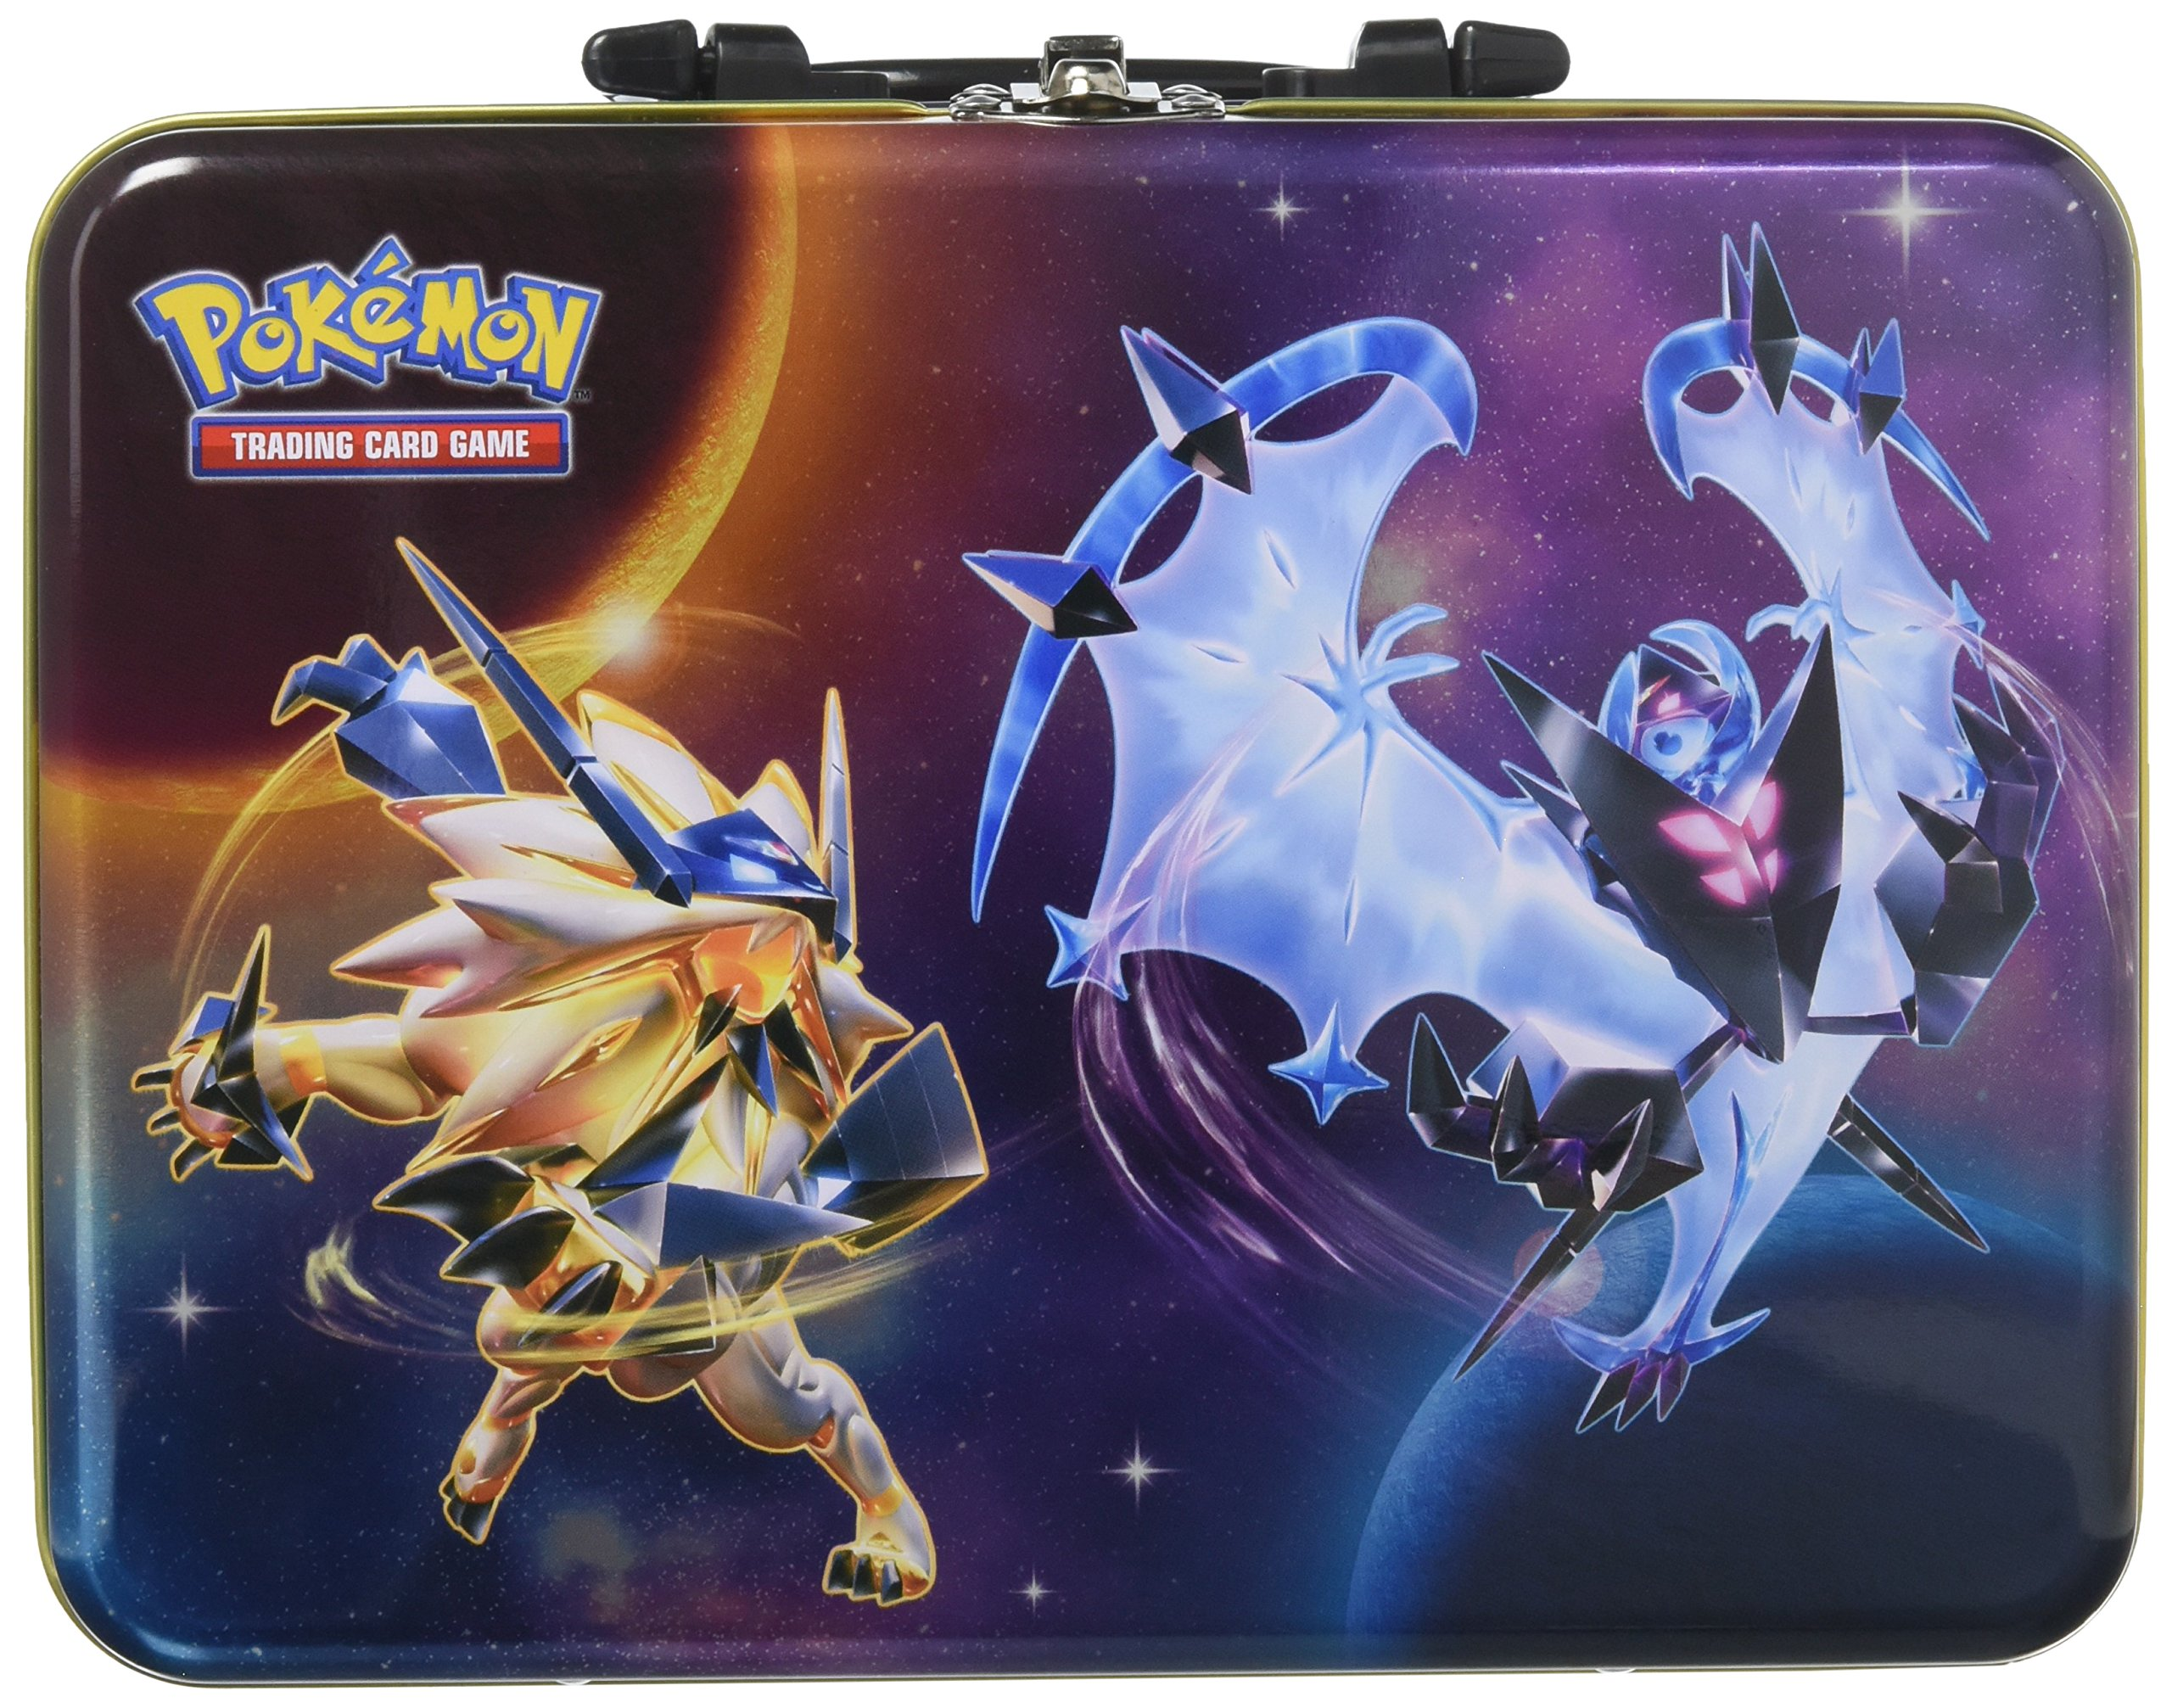 Pokemon TCG: 2018 Collector's Chest Tin | Collectible Trading Card Set, 3 Ultra Rare Foil Promo Form Lycanroc, Dusk Mane, Dawn Wings Necrozma | 5 Booster Packs, Stickers and More